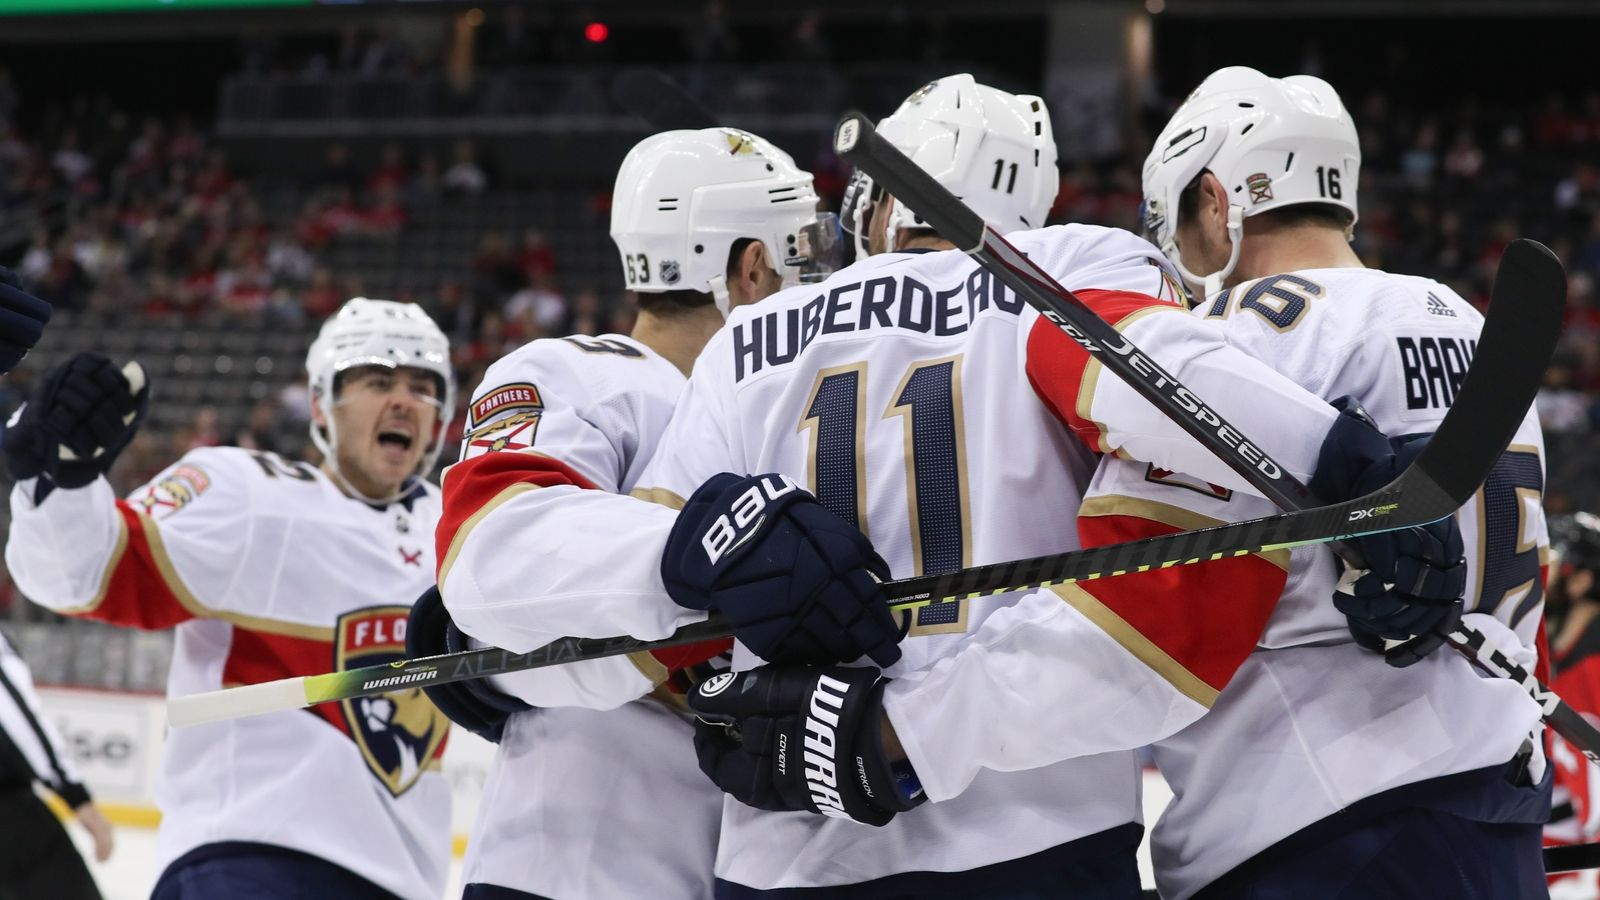 Evgenii Dadonov extends goal streak to 4 games, Panthers score 5 unanswered to top Devils